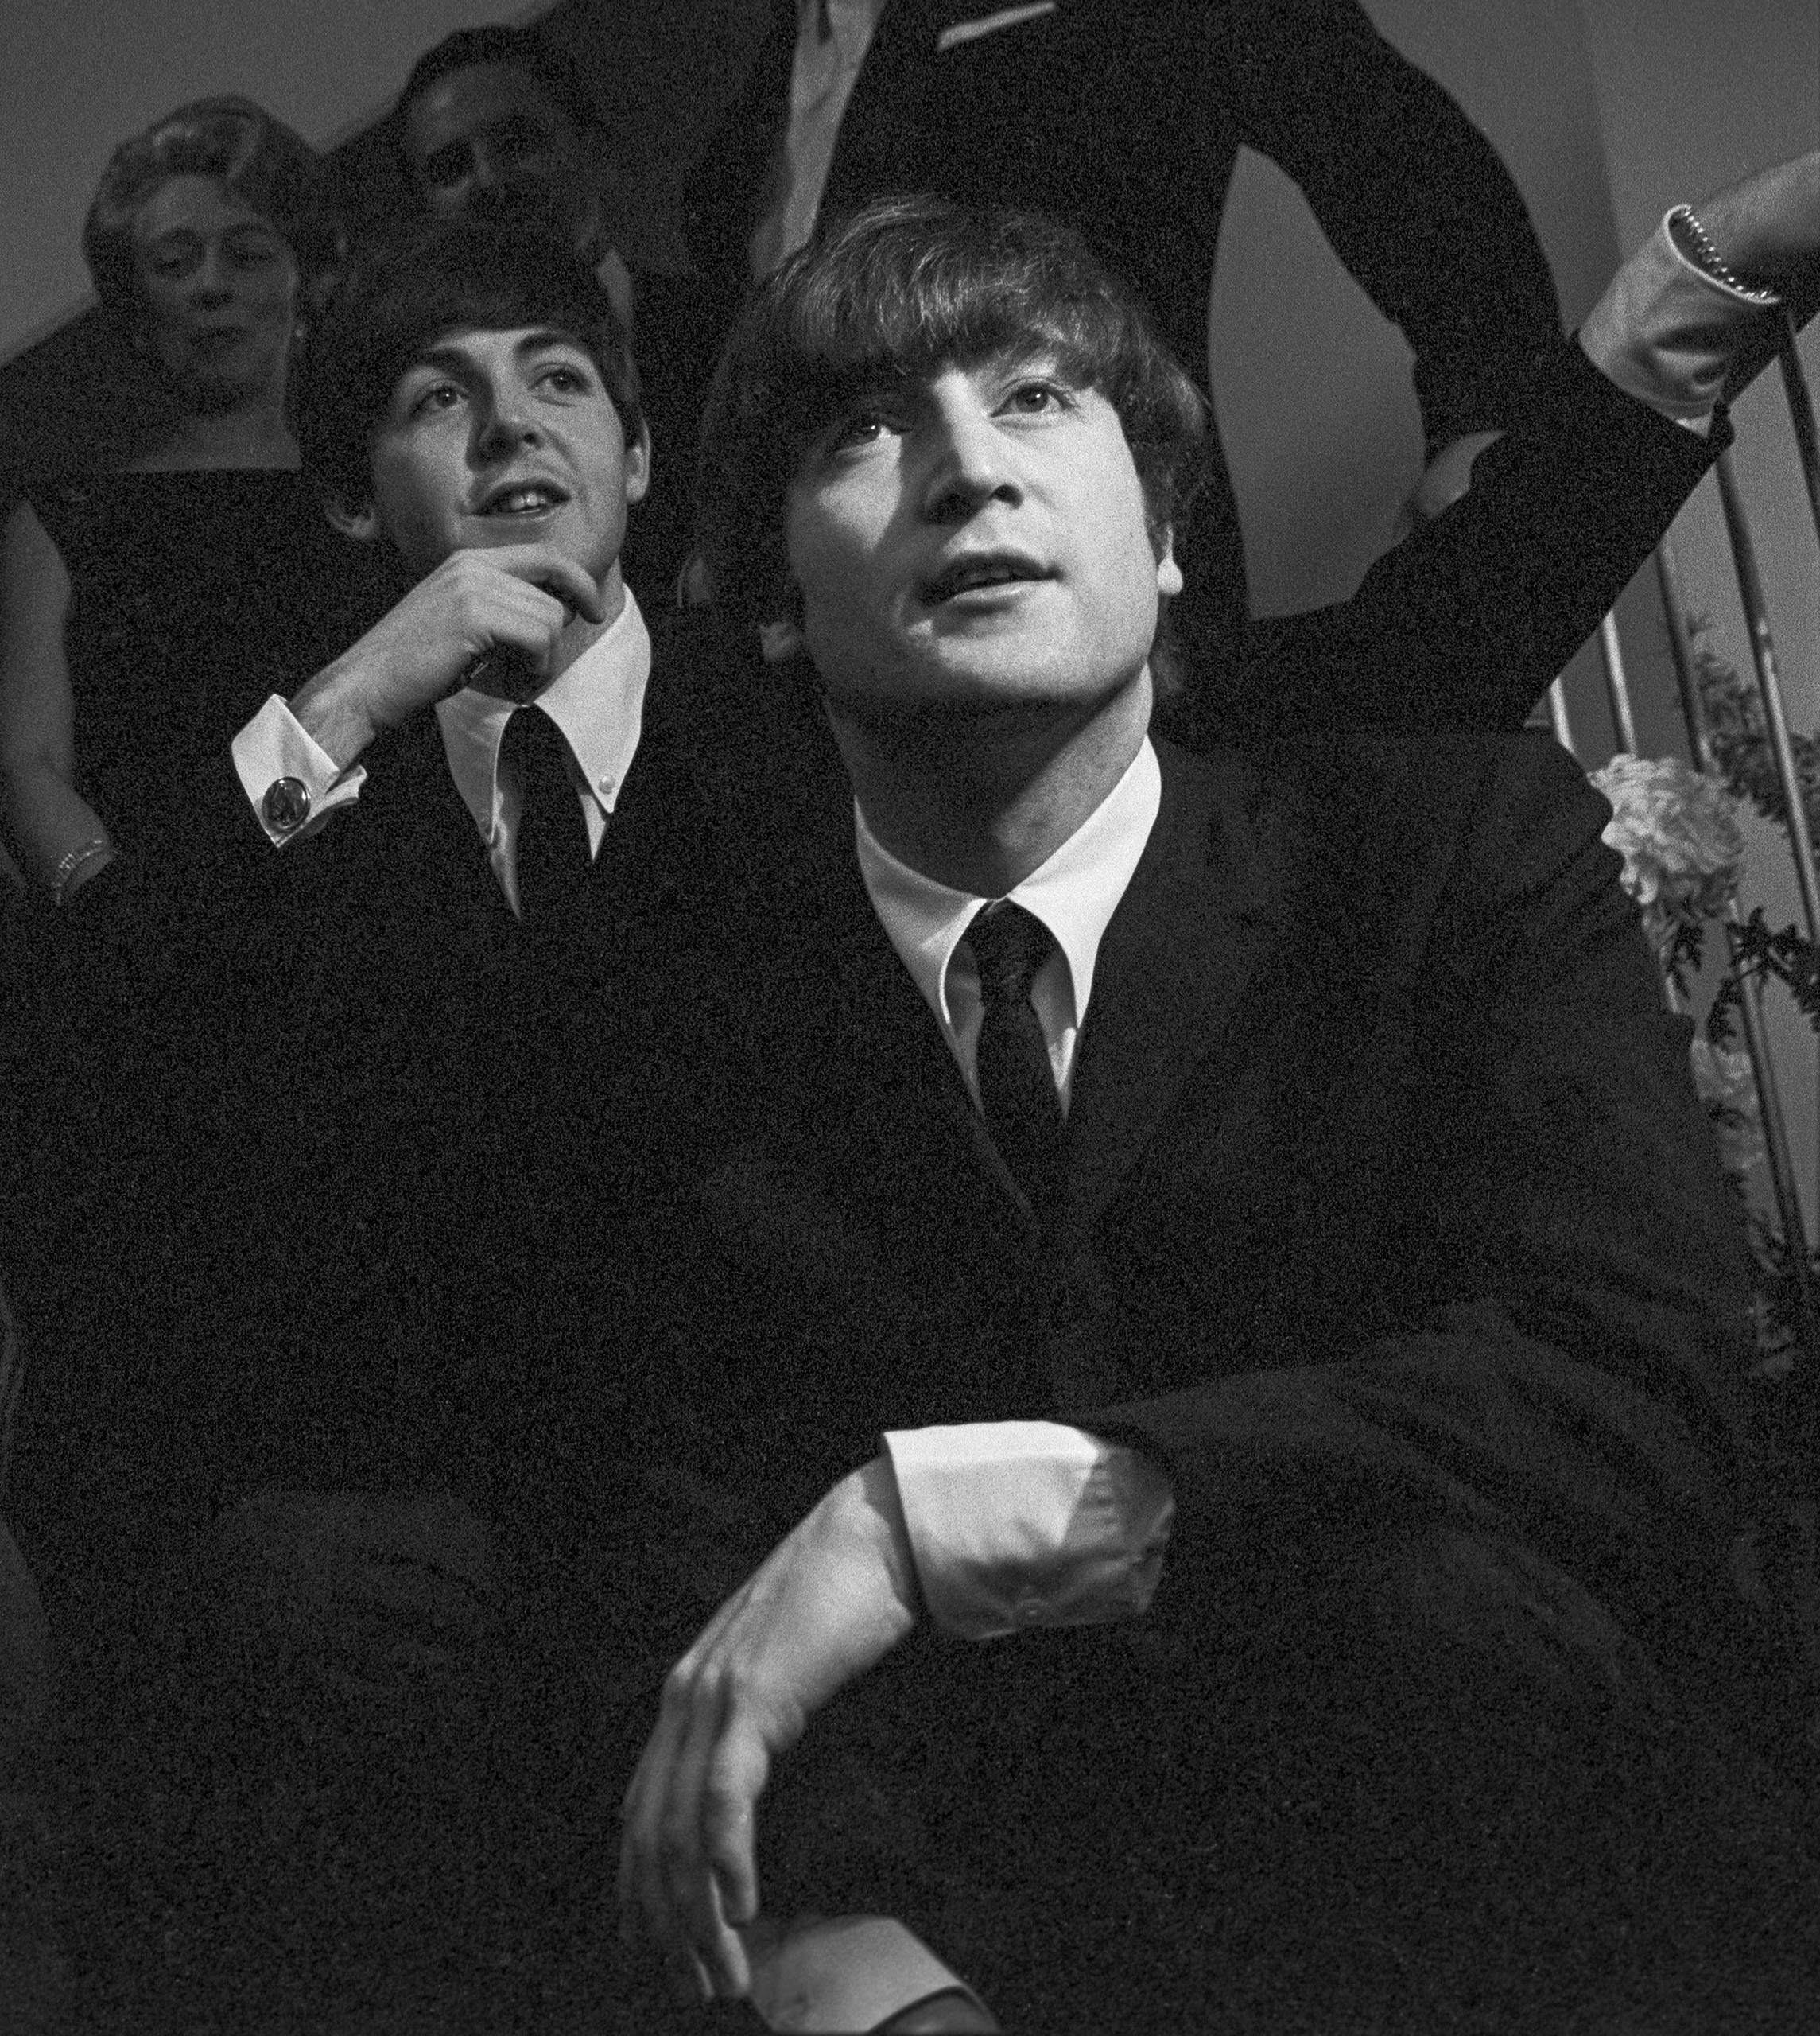 John Lennon and Paul McCartney at the British Embassy after their concert.